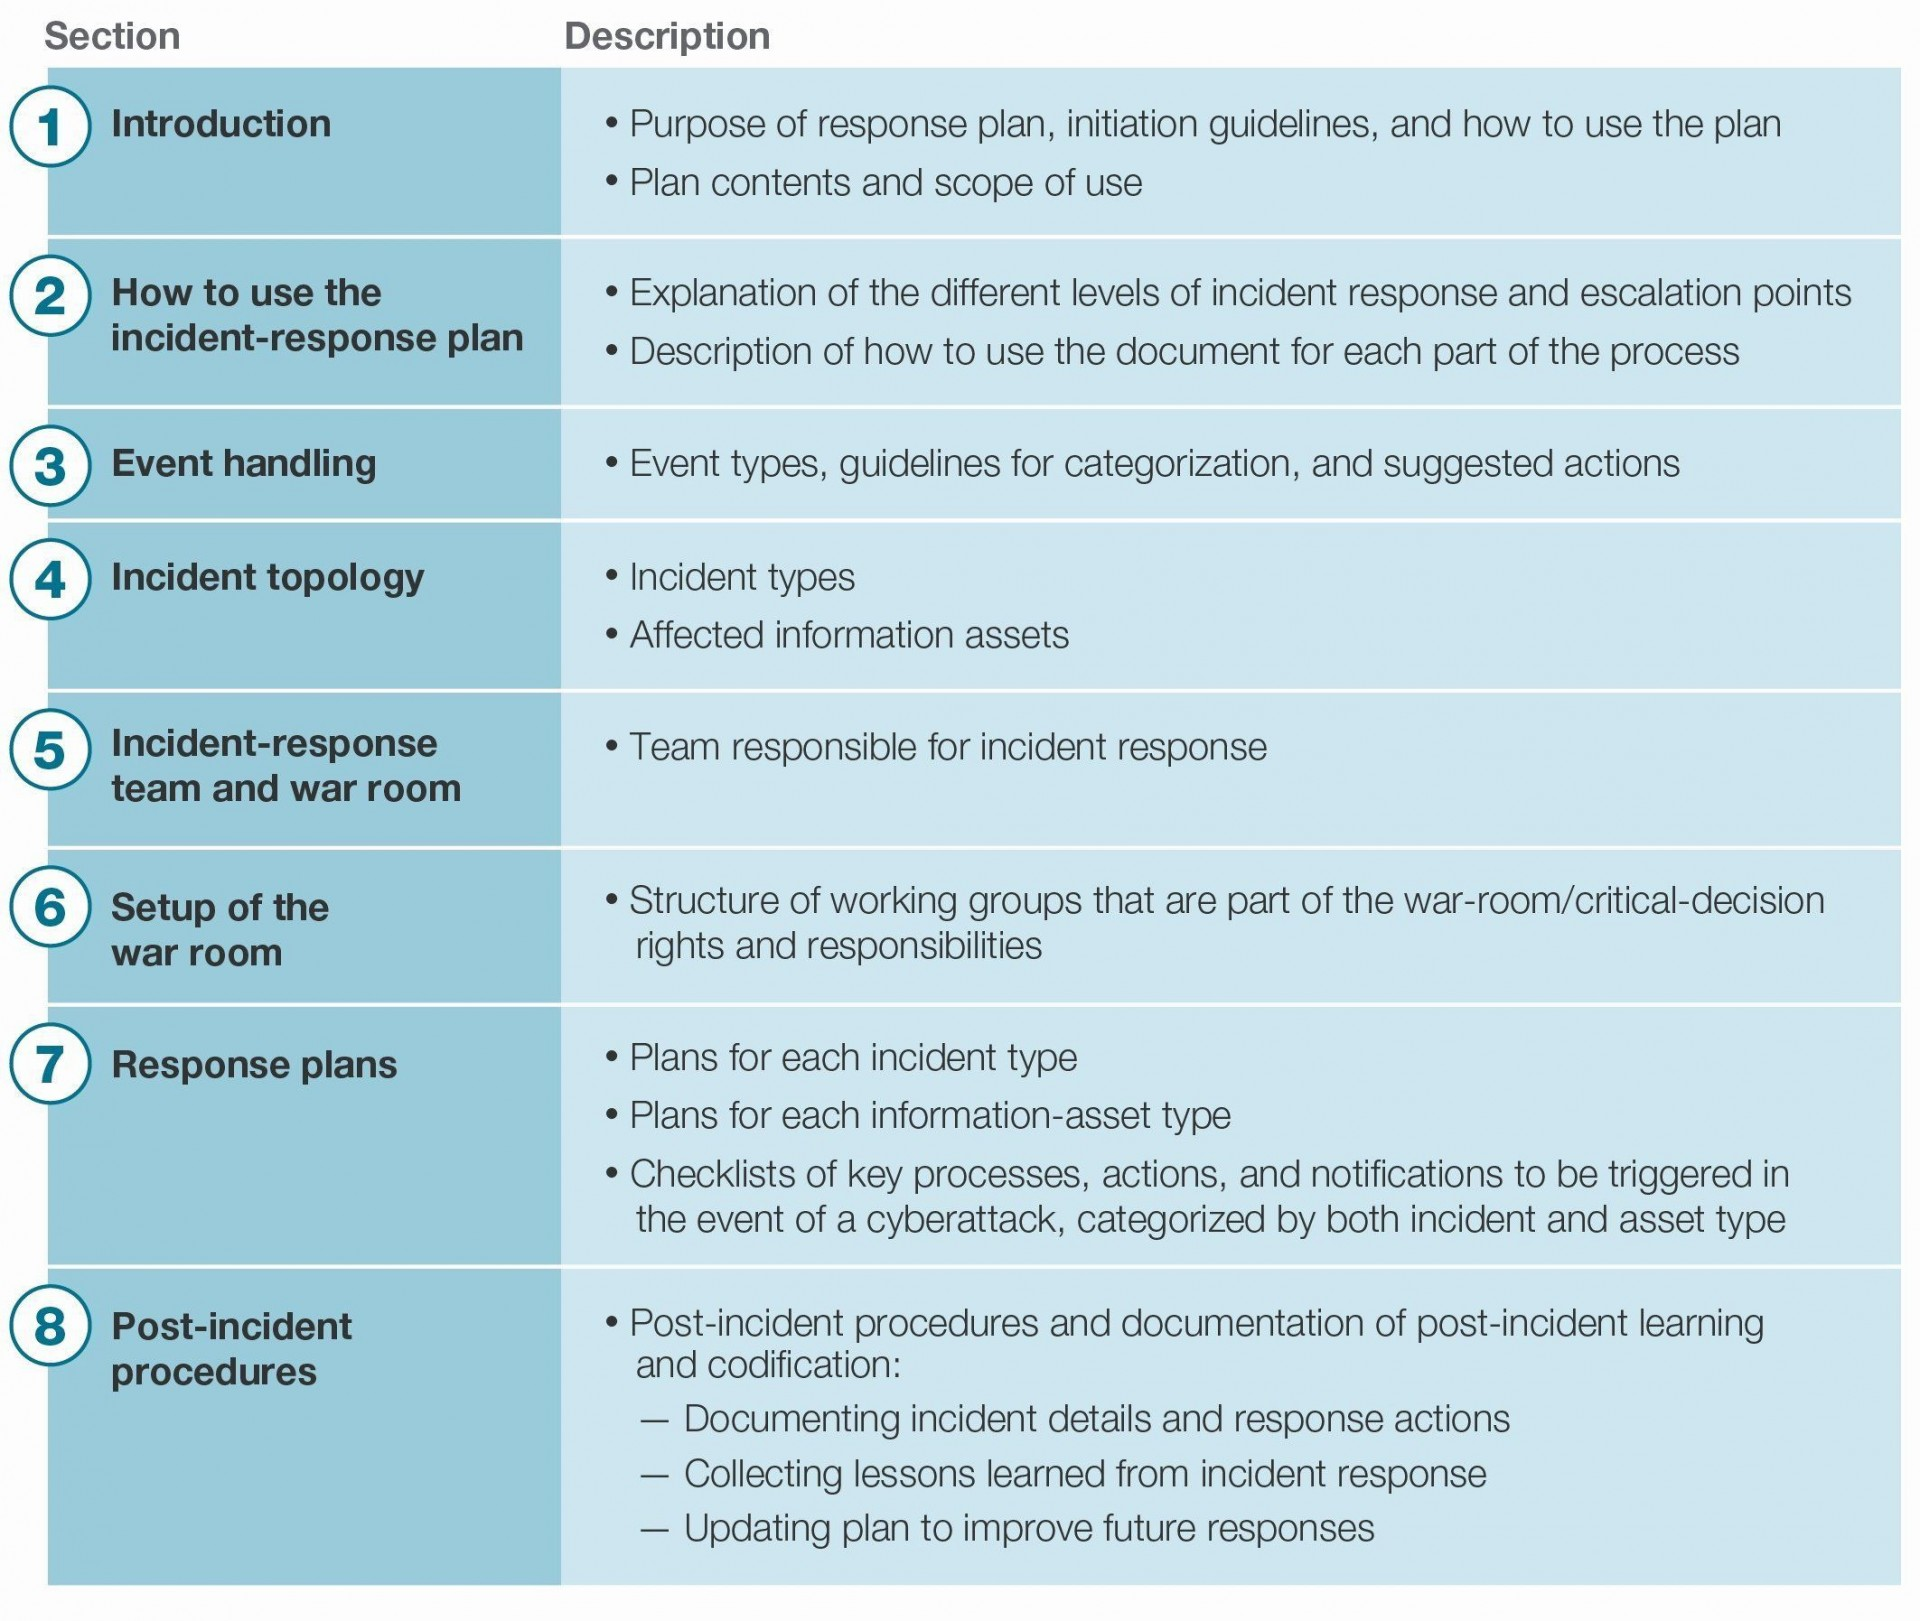 004 Incredible Incident Response Plan Template Picture  Example San For Small Busines Pdf1920